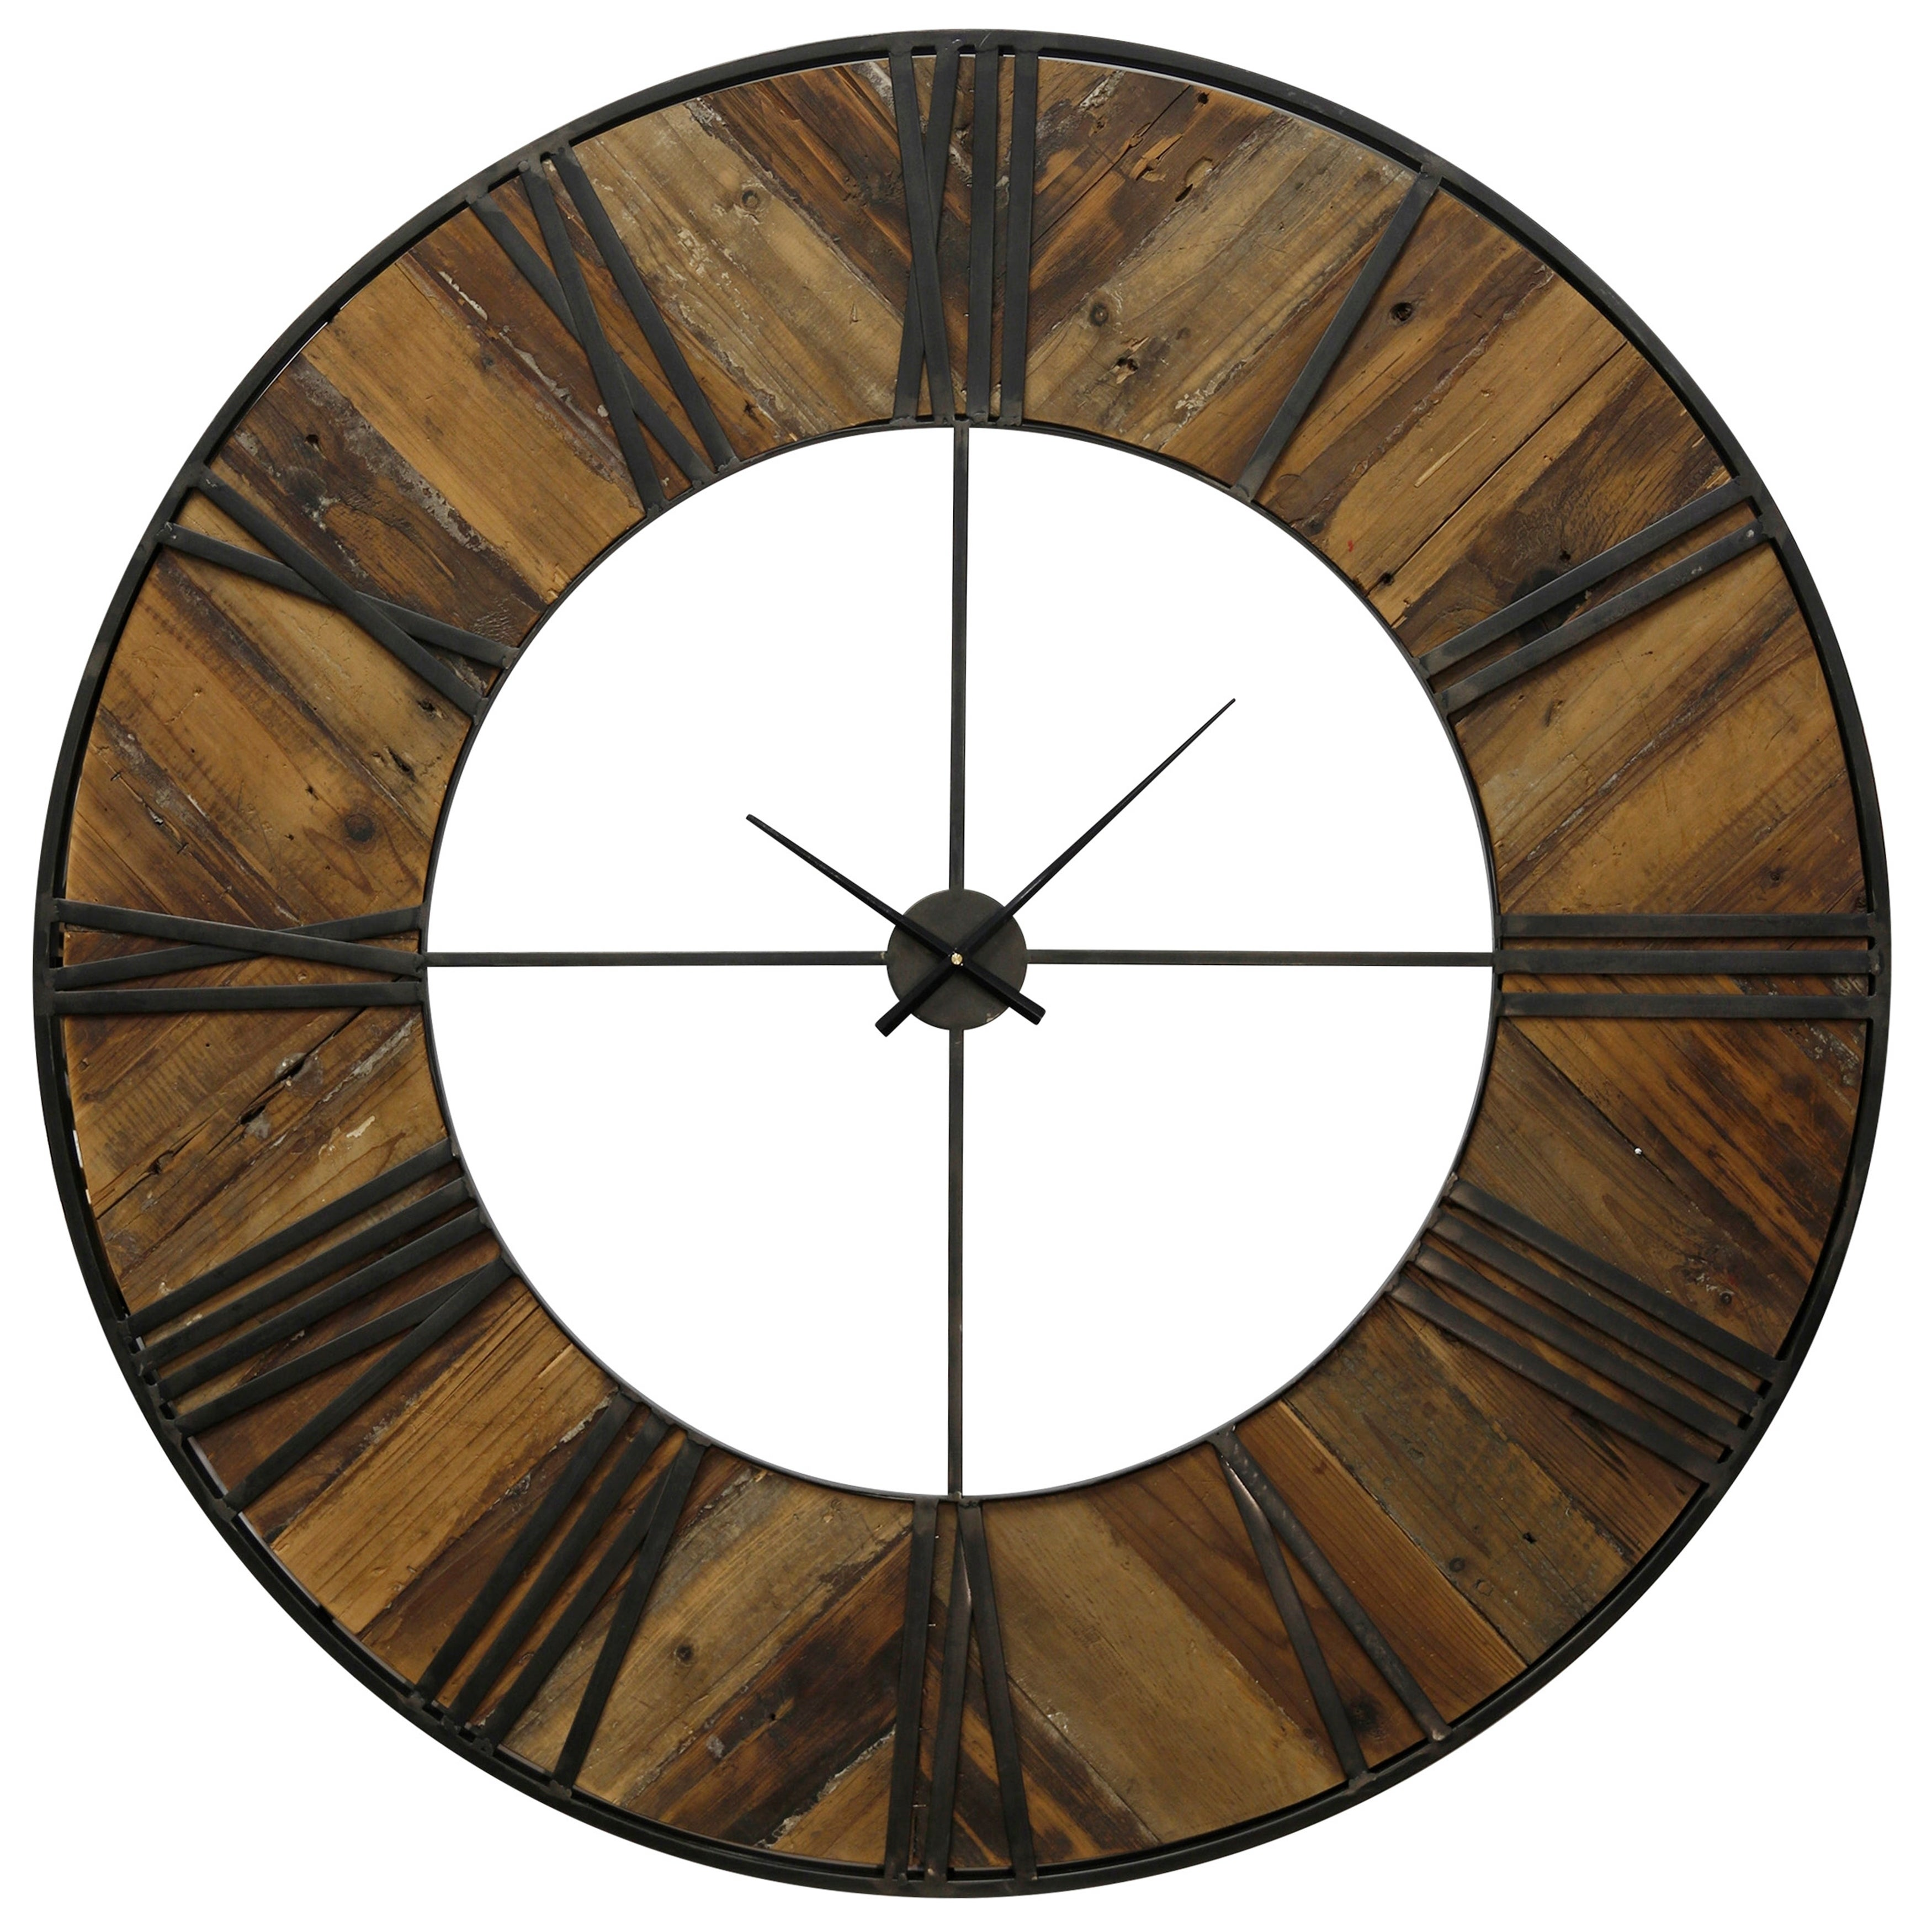 Round Wall Clock with Roman Numerals on Metal Frame Over Herringbone Parquet Wood